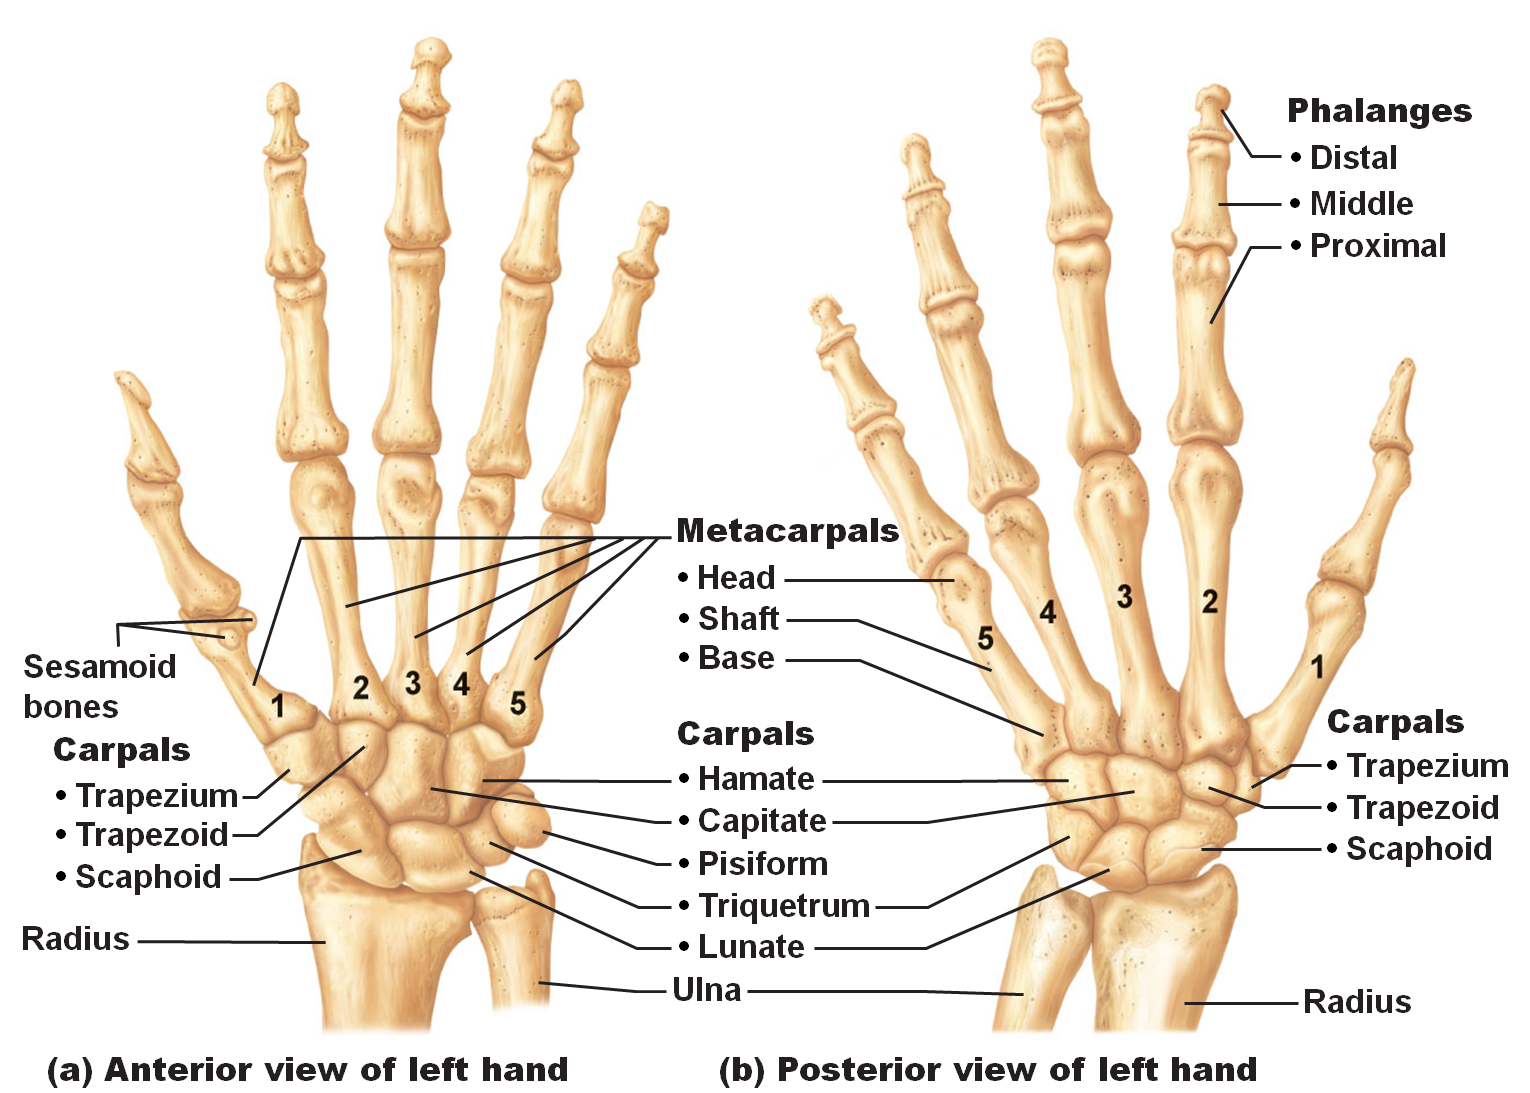 Bones of the hands | Anatomy & Physiology | Pinterest